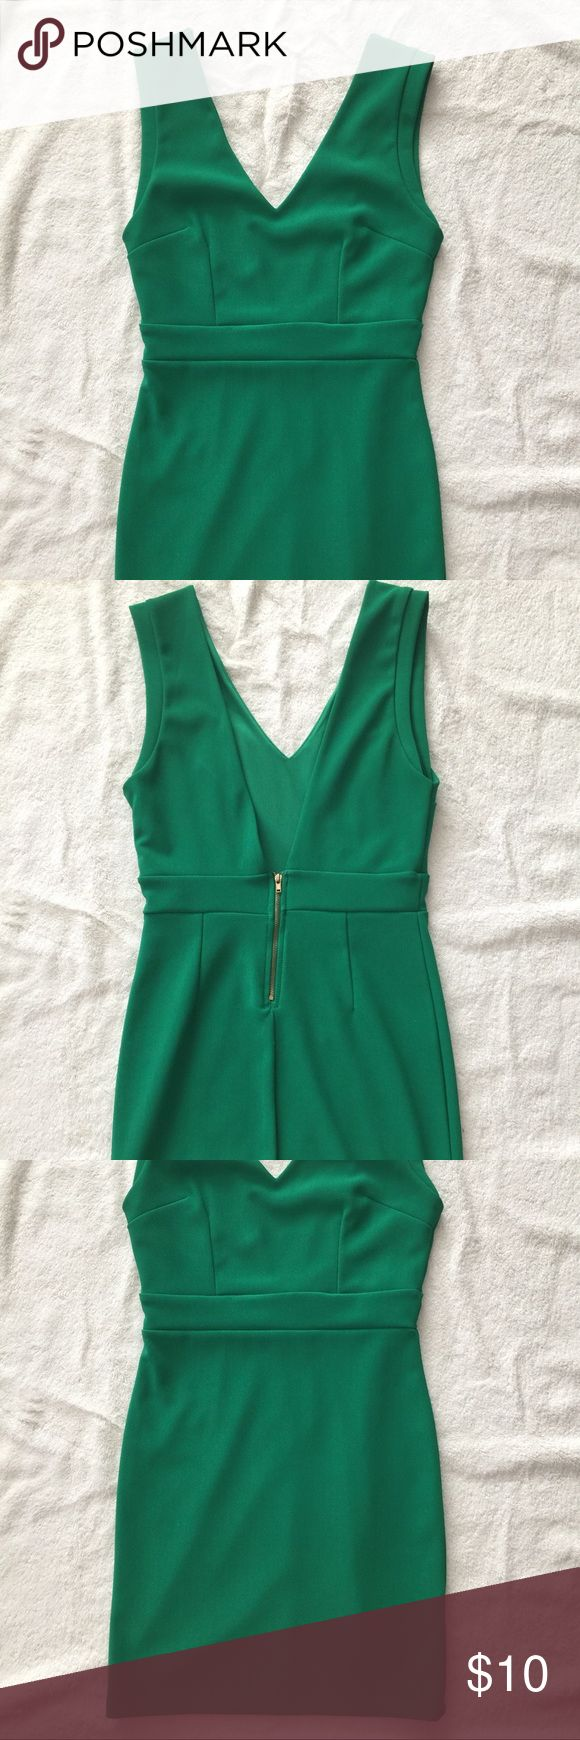 Green Mini Dress Green mini dress with gold back zipper. Tag has been cut out so as not to show in the back. Forever 21 Dresses Mini